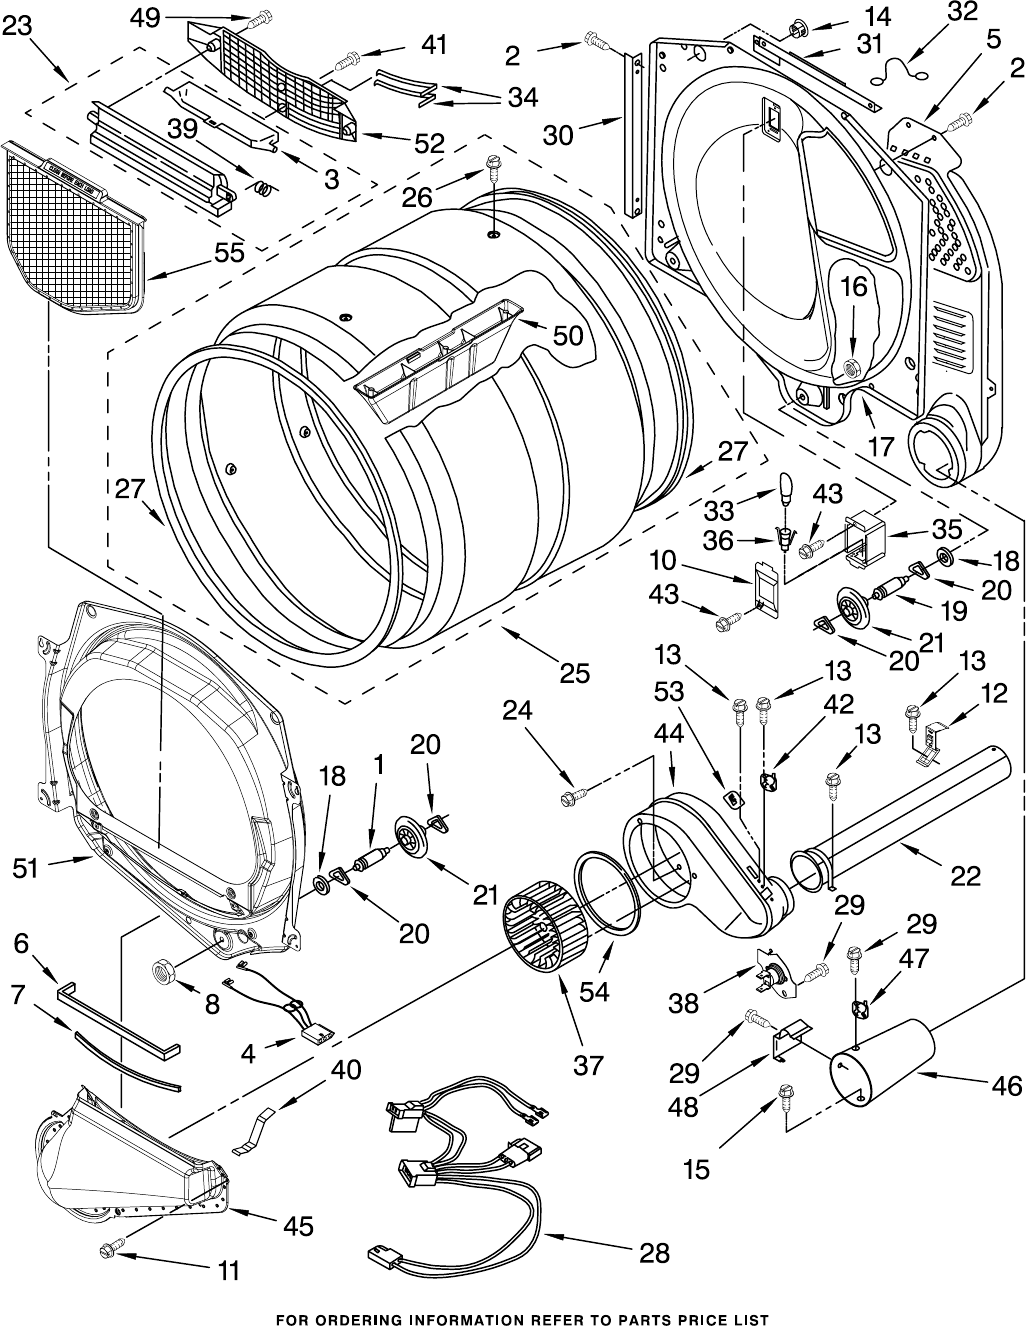 Page 5 of Whirlpool Clothes Dryer WGD8300SW1 User Guide